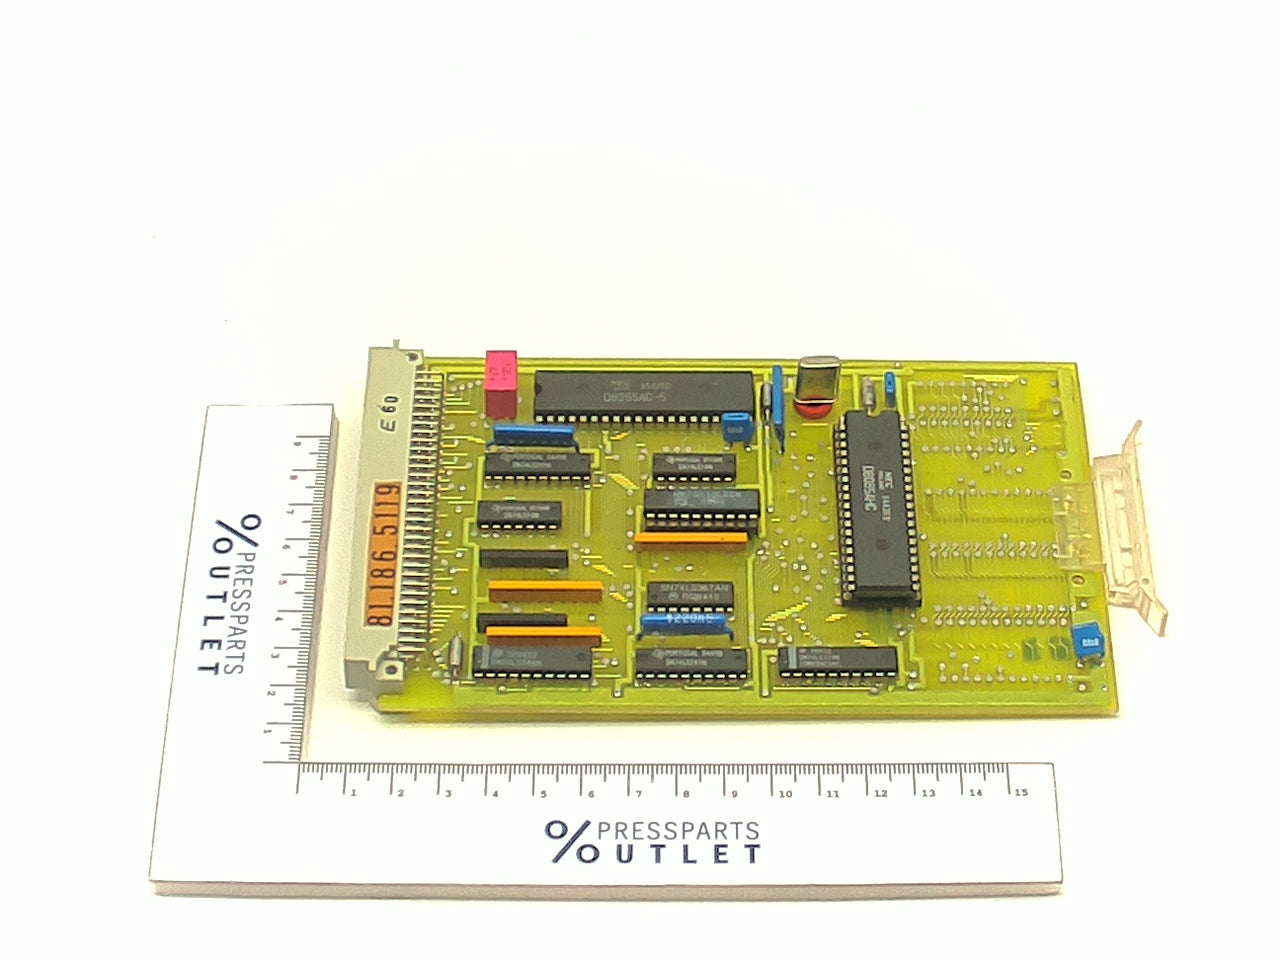 Printed circuit board 9605.829 - 81.186.5119/ - Elektronikkarte 9605.829